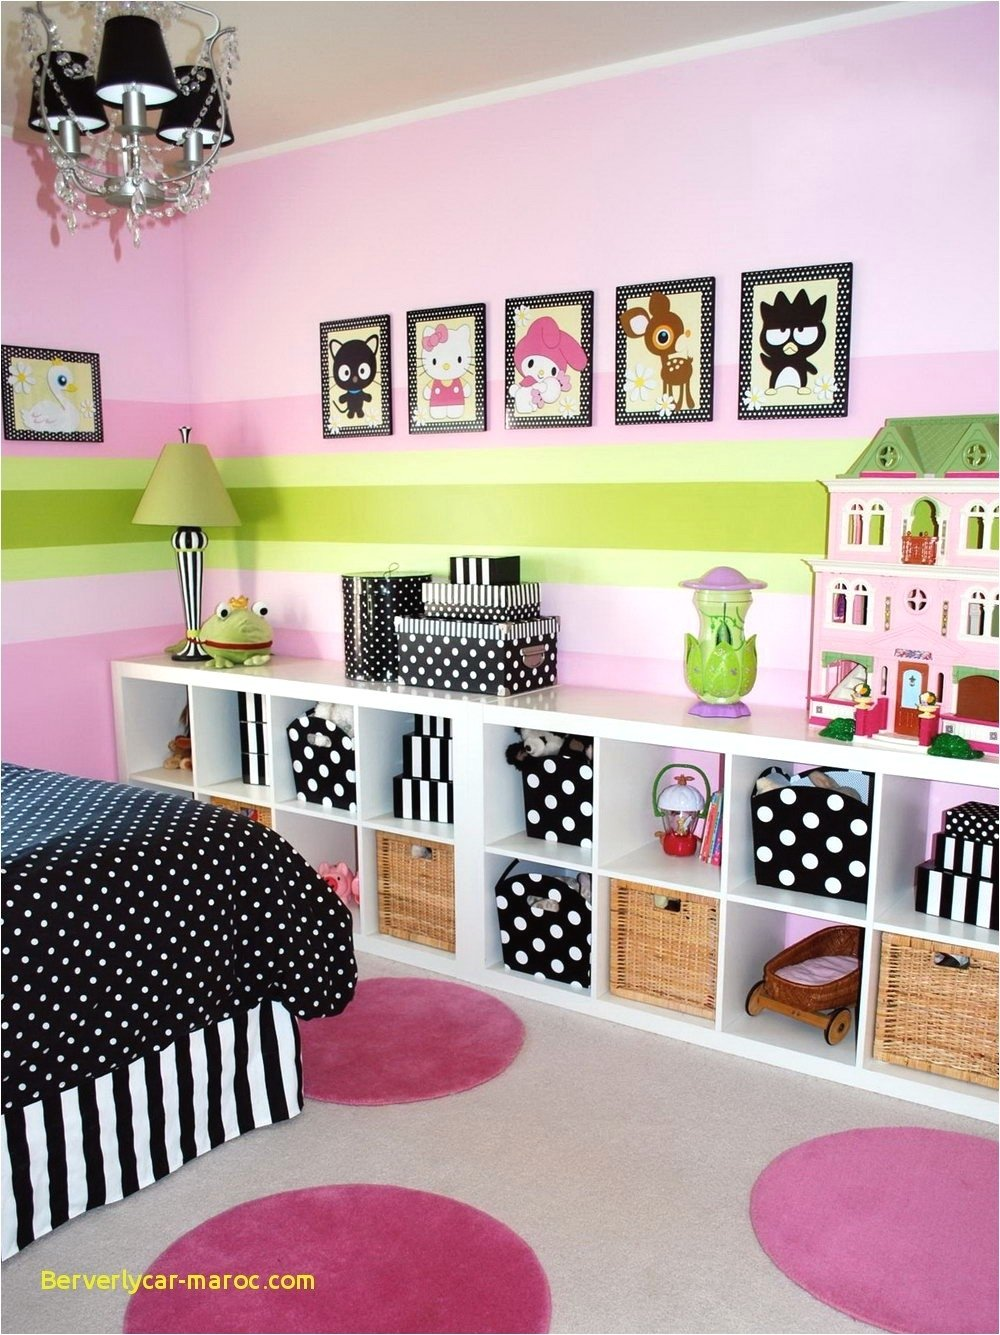 10 Most Popular Crafty Ideas For Your Room craft ideas decorate your room new cute crafts to decorate your room 2020